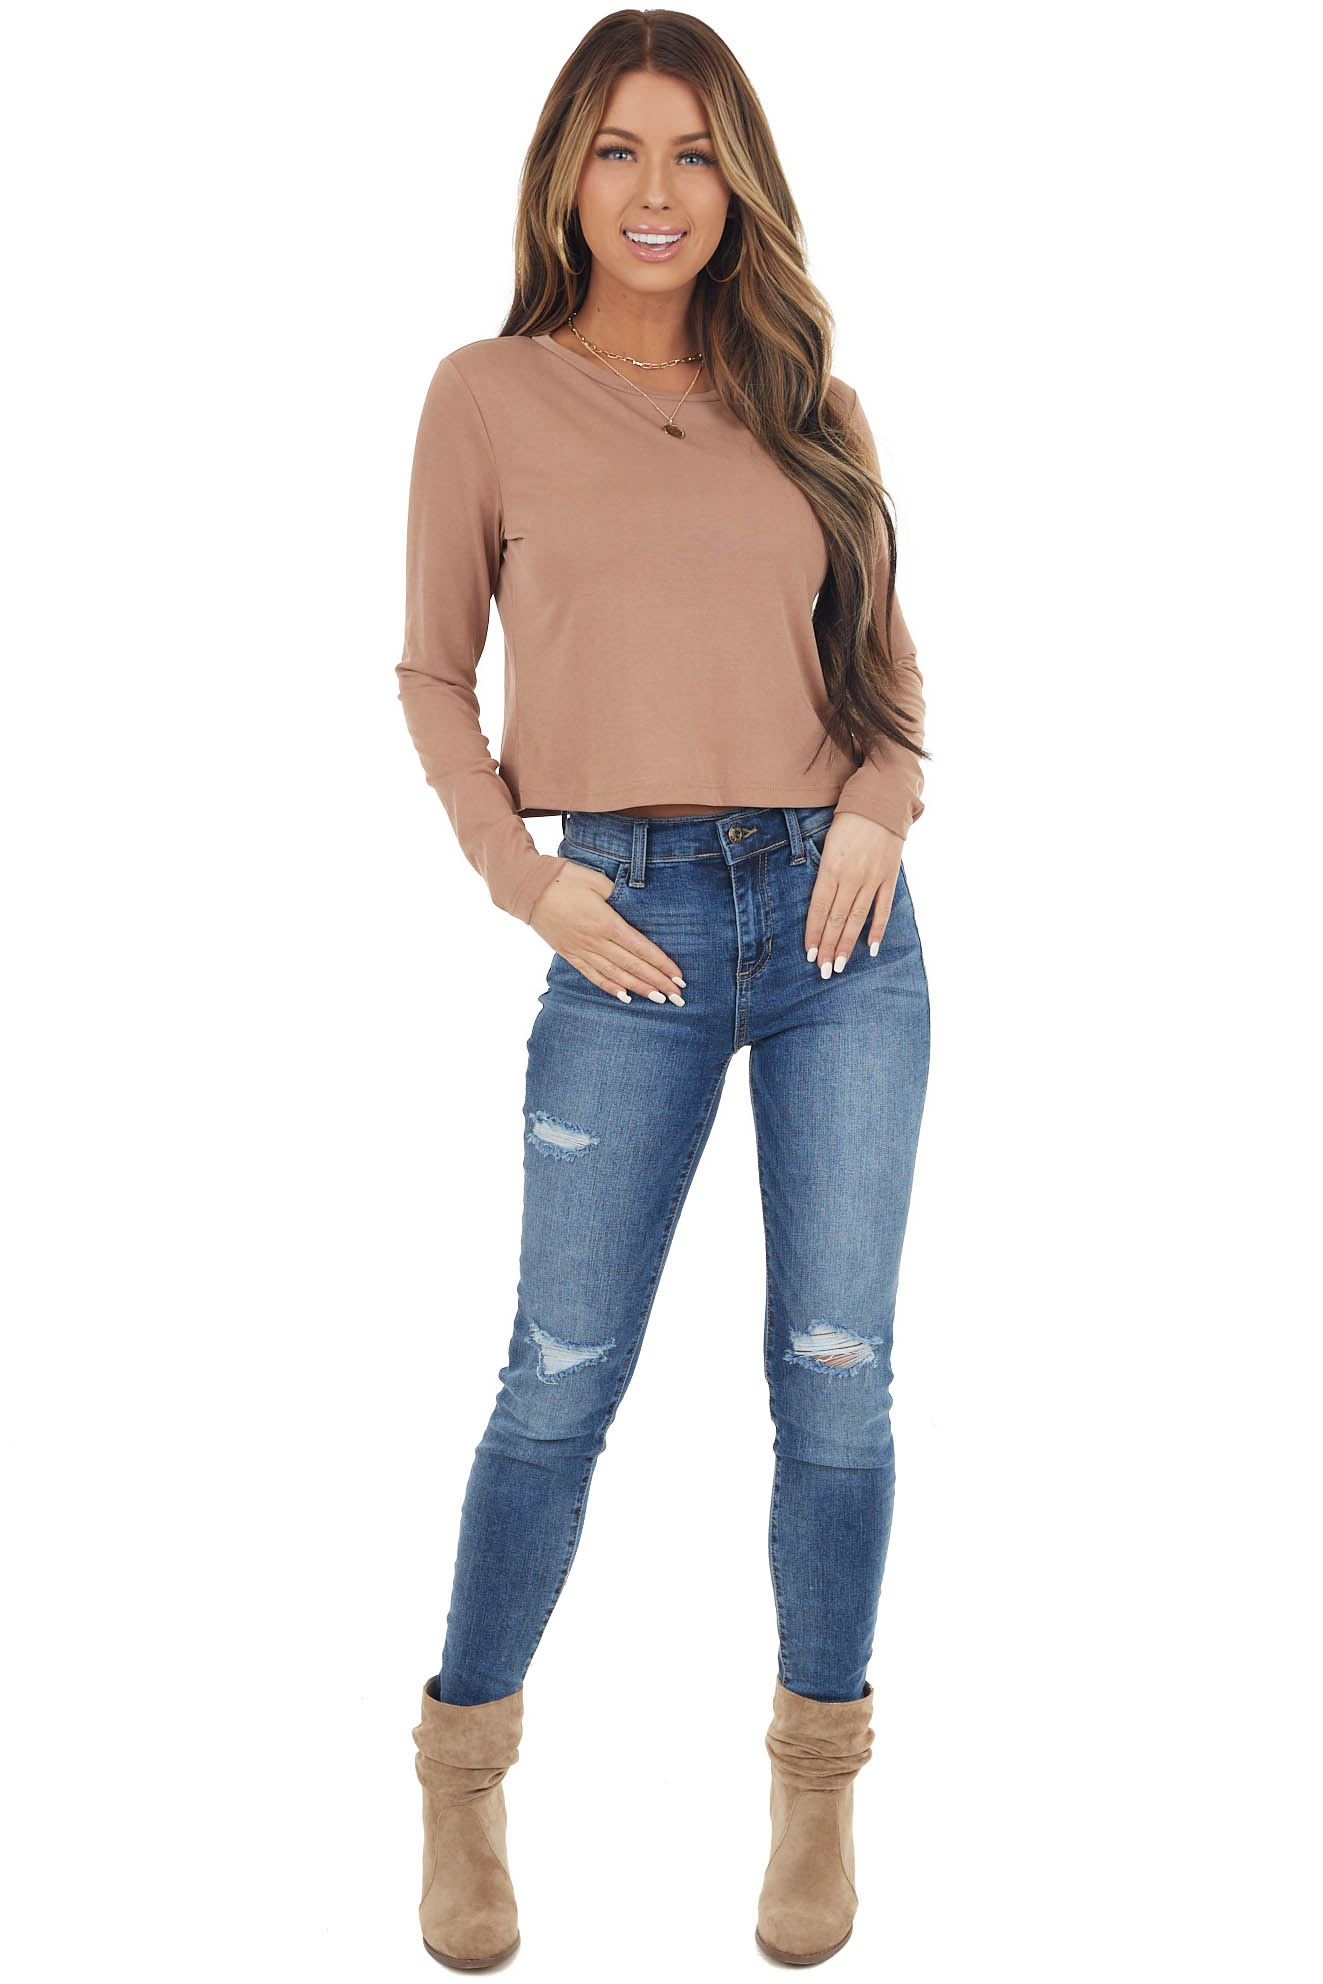 Camel Knit Crop Top with Long Sleeves and Rounded Neckline